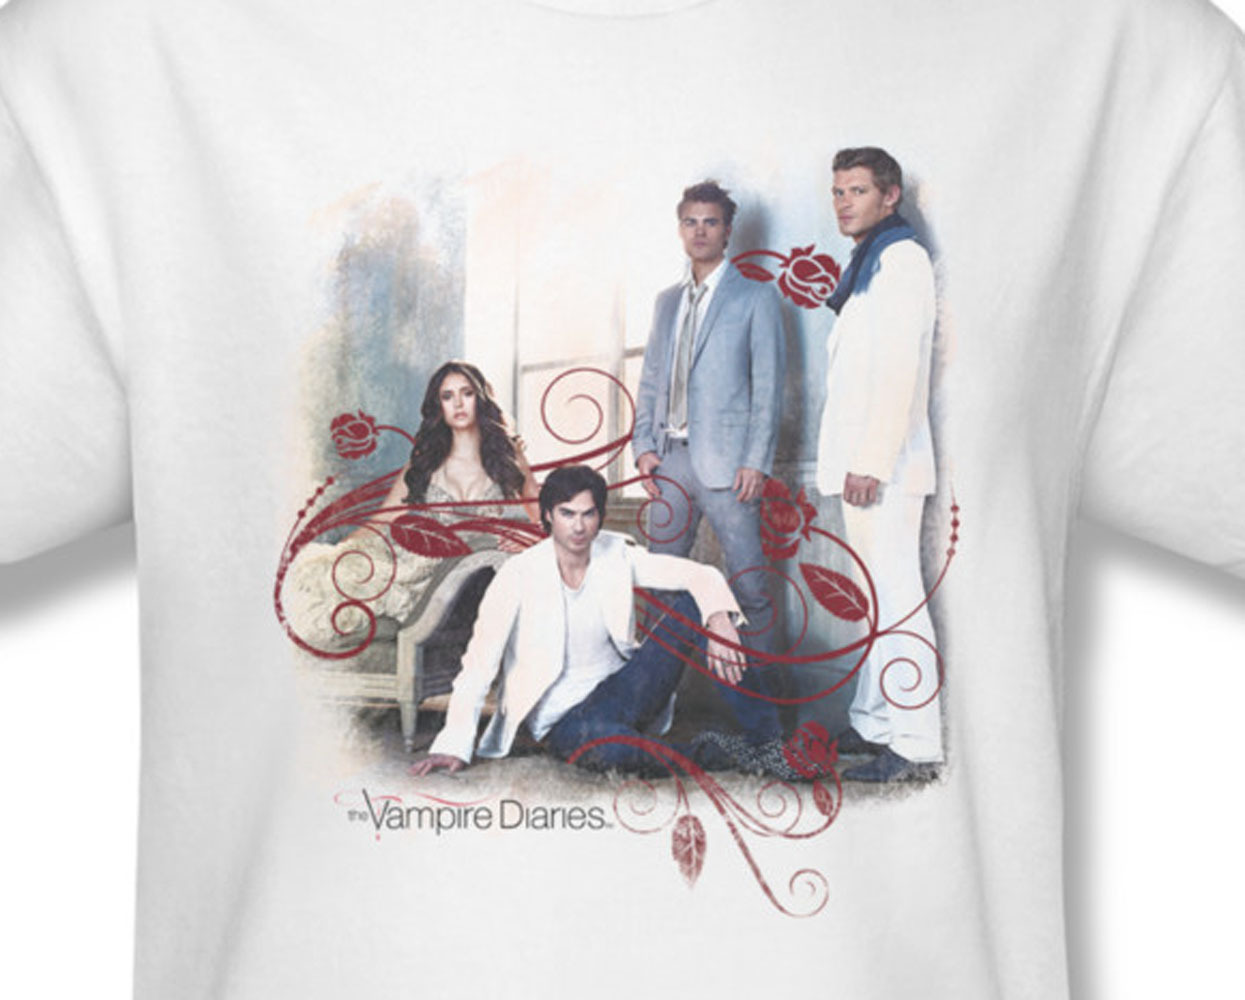 The vampire diaries supernatural drama nina dobrev for sale online graphic white tee wbt259 at